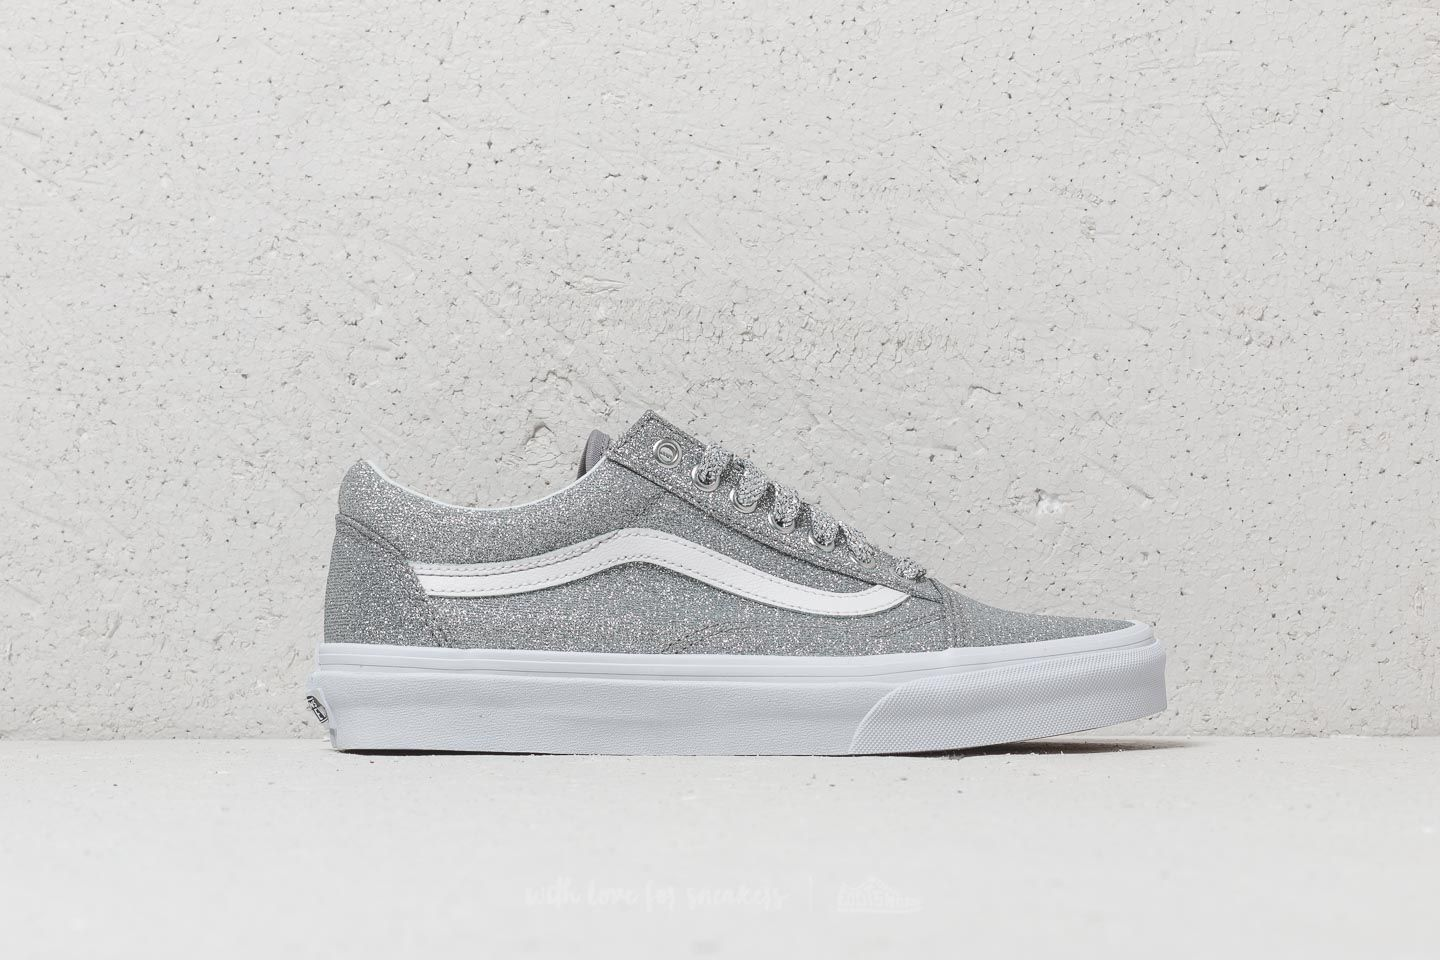 7c4b551d0e796a Vans Old Skool (Lurex Glitter) Silver  True White at a great price 68